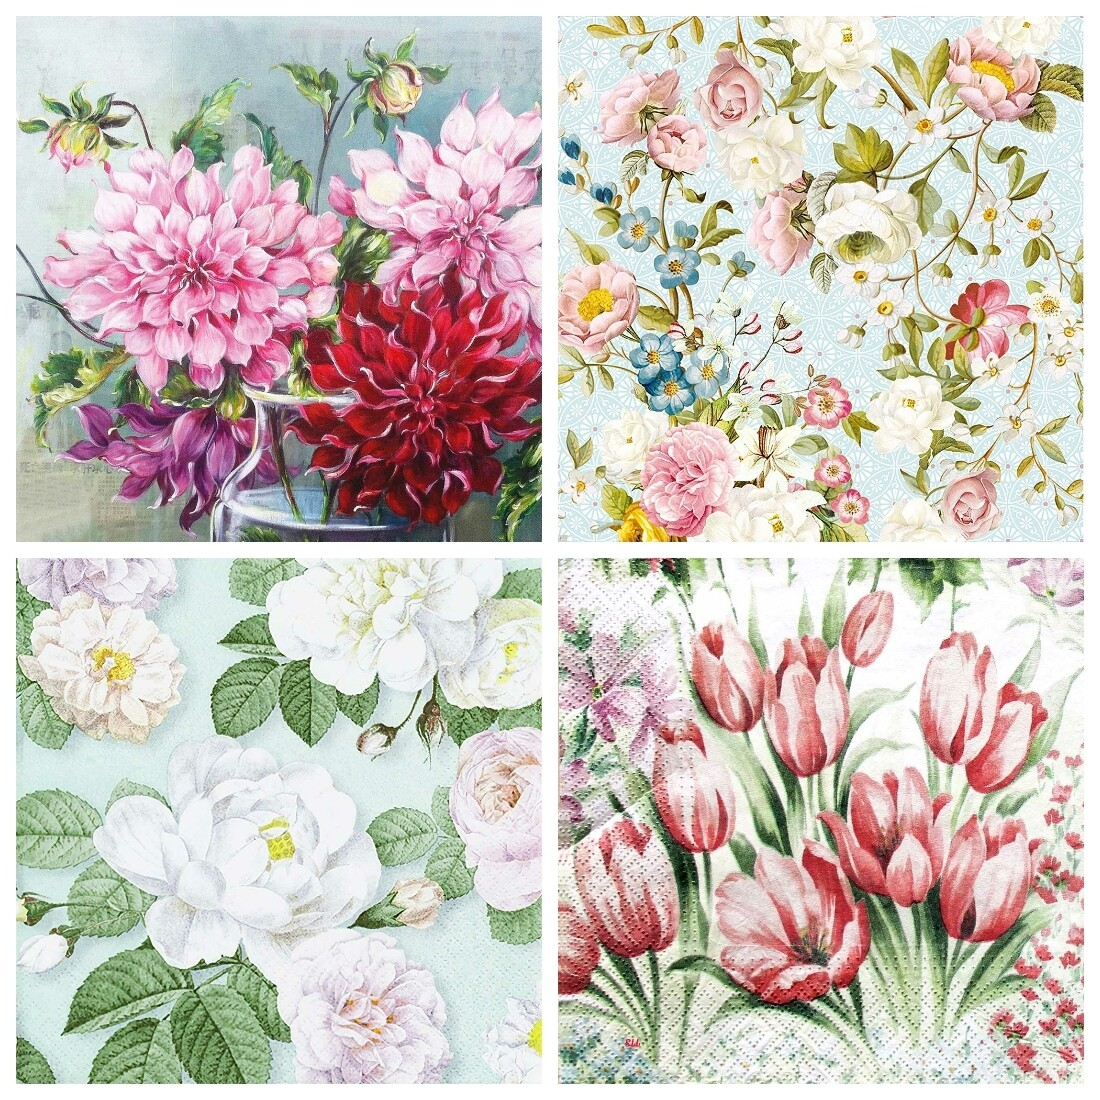 Decoupage Paper Napkins - Floral 30 - Mixed Flowers (4 Sheets)